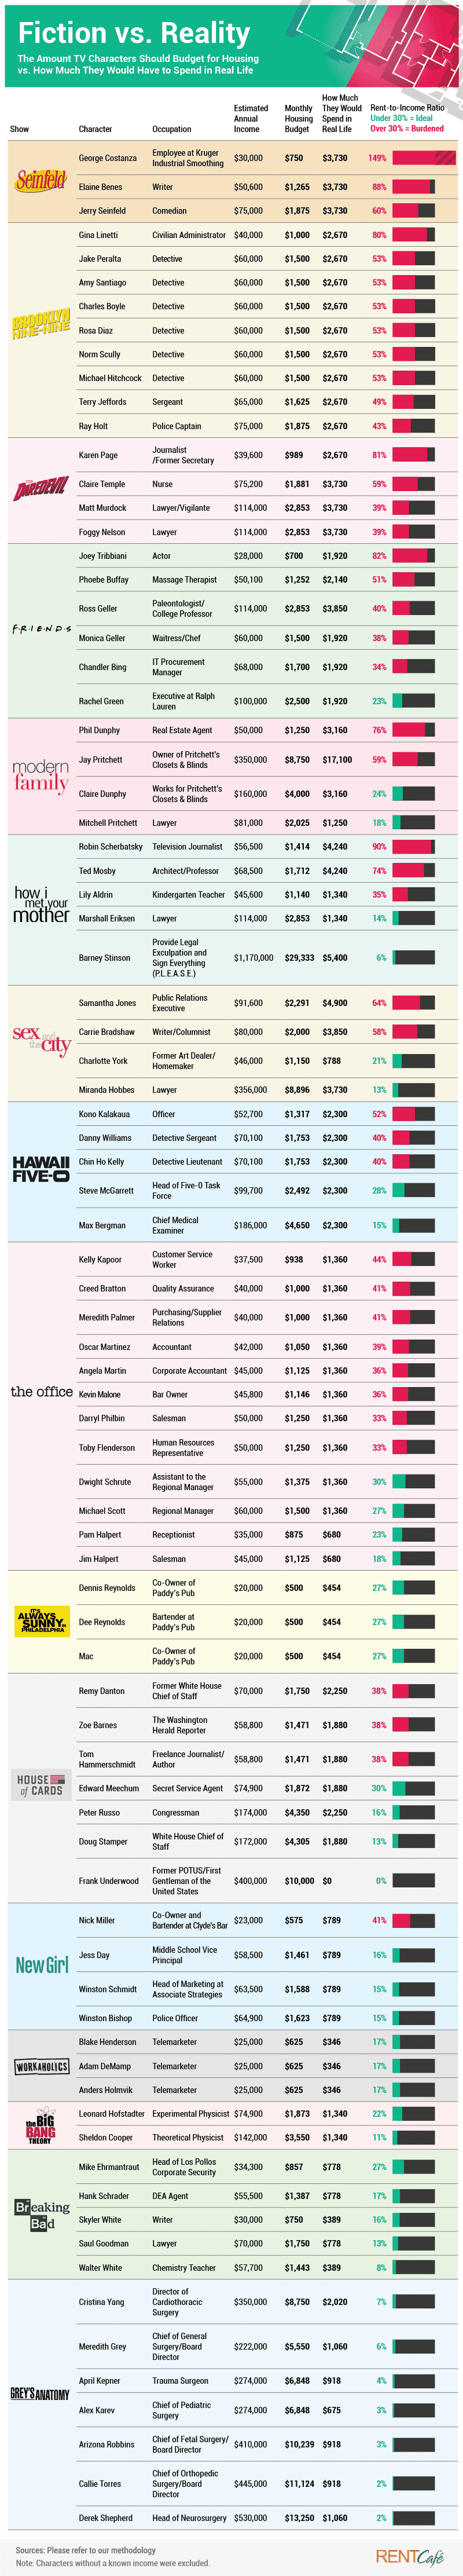 Chart asset: TV characters housing cost